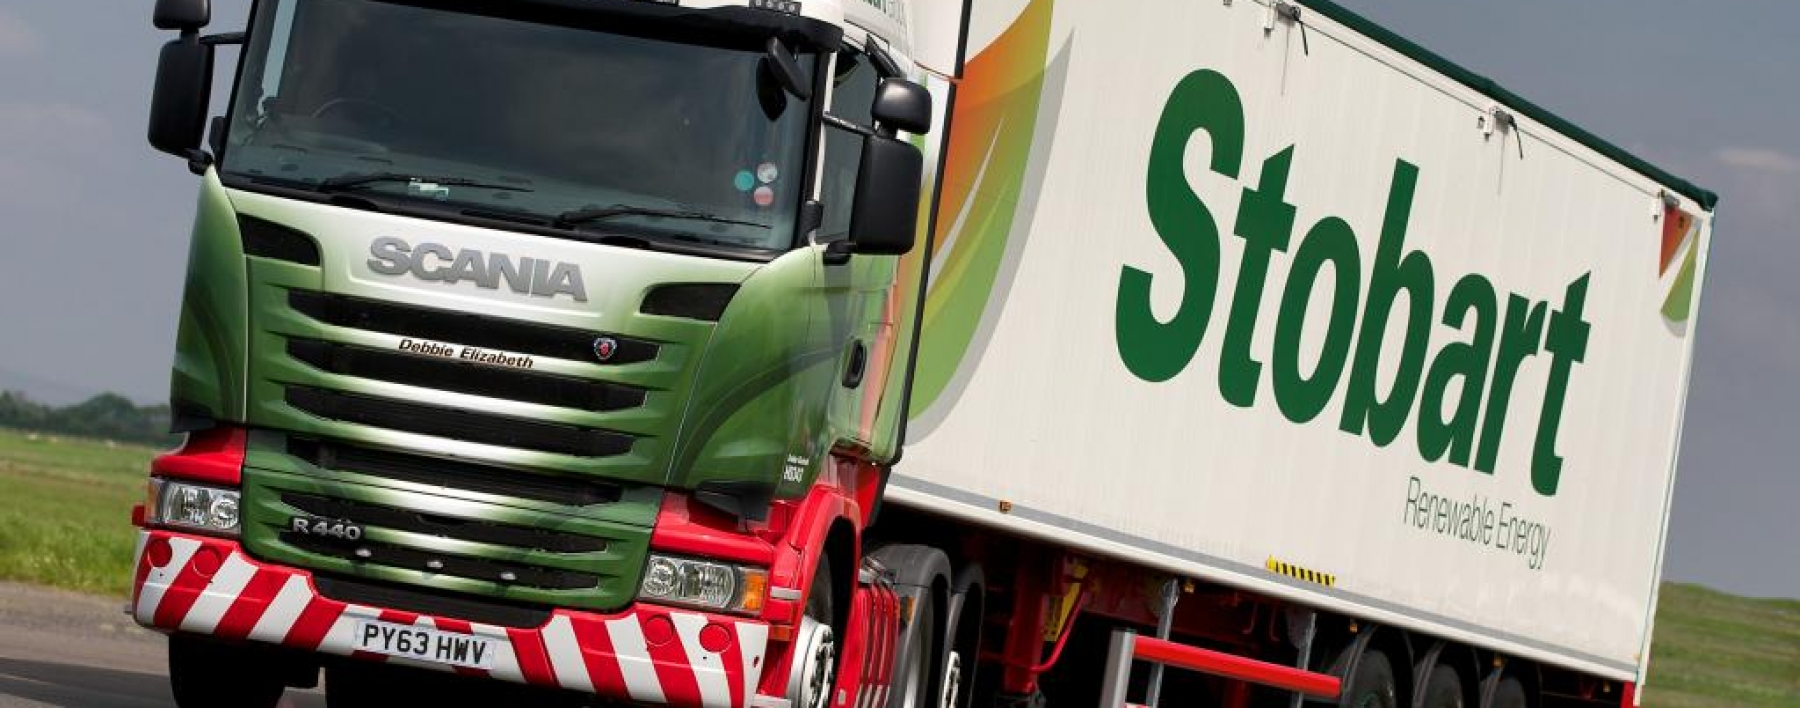 Stobart Biomass new vehicle livery